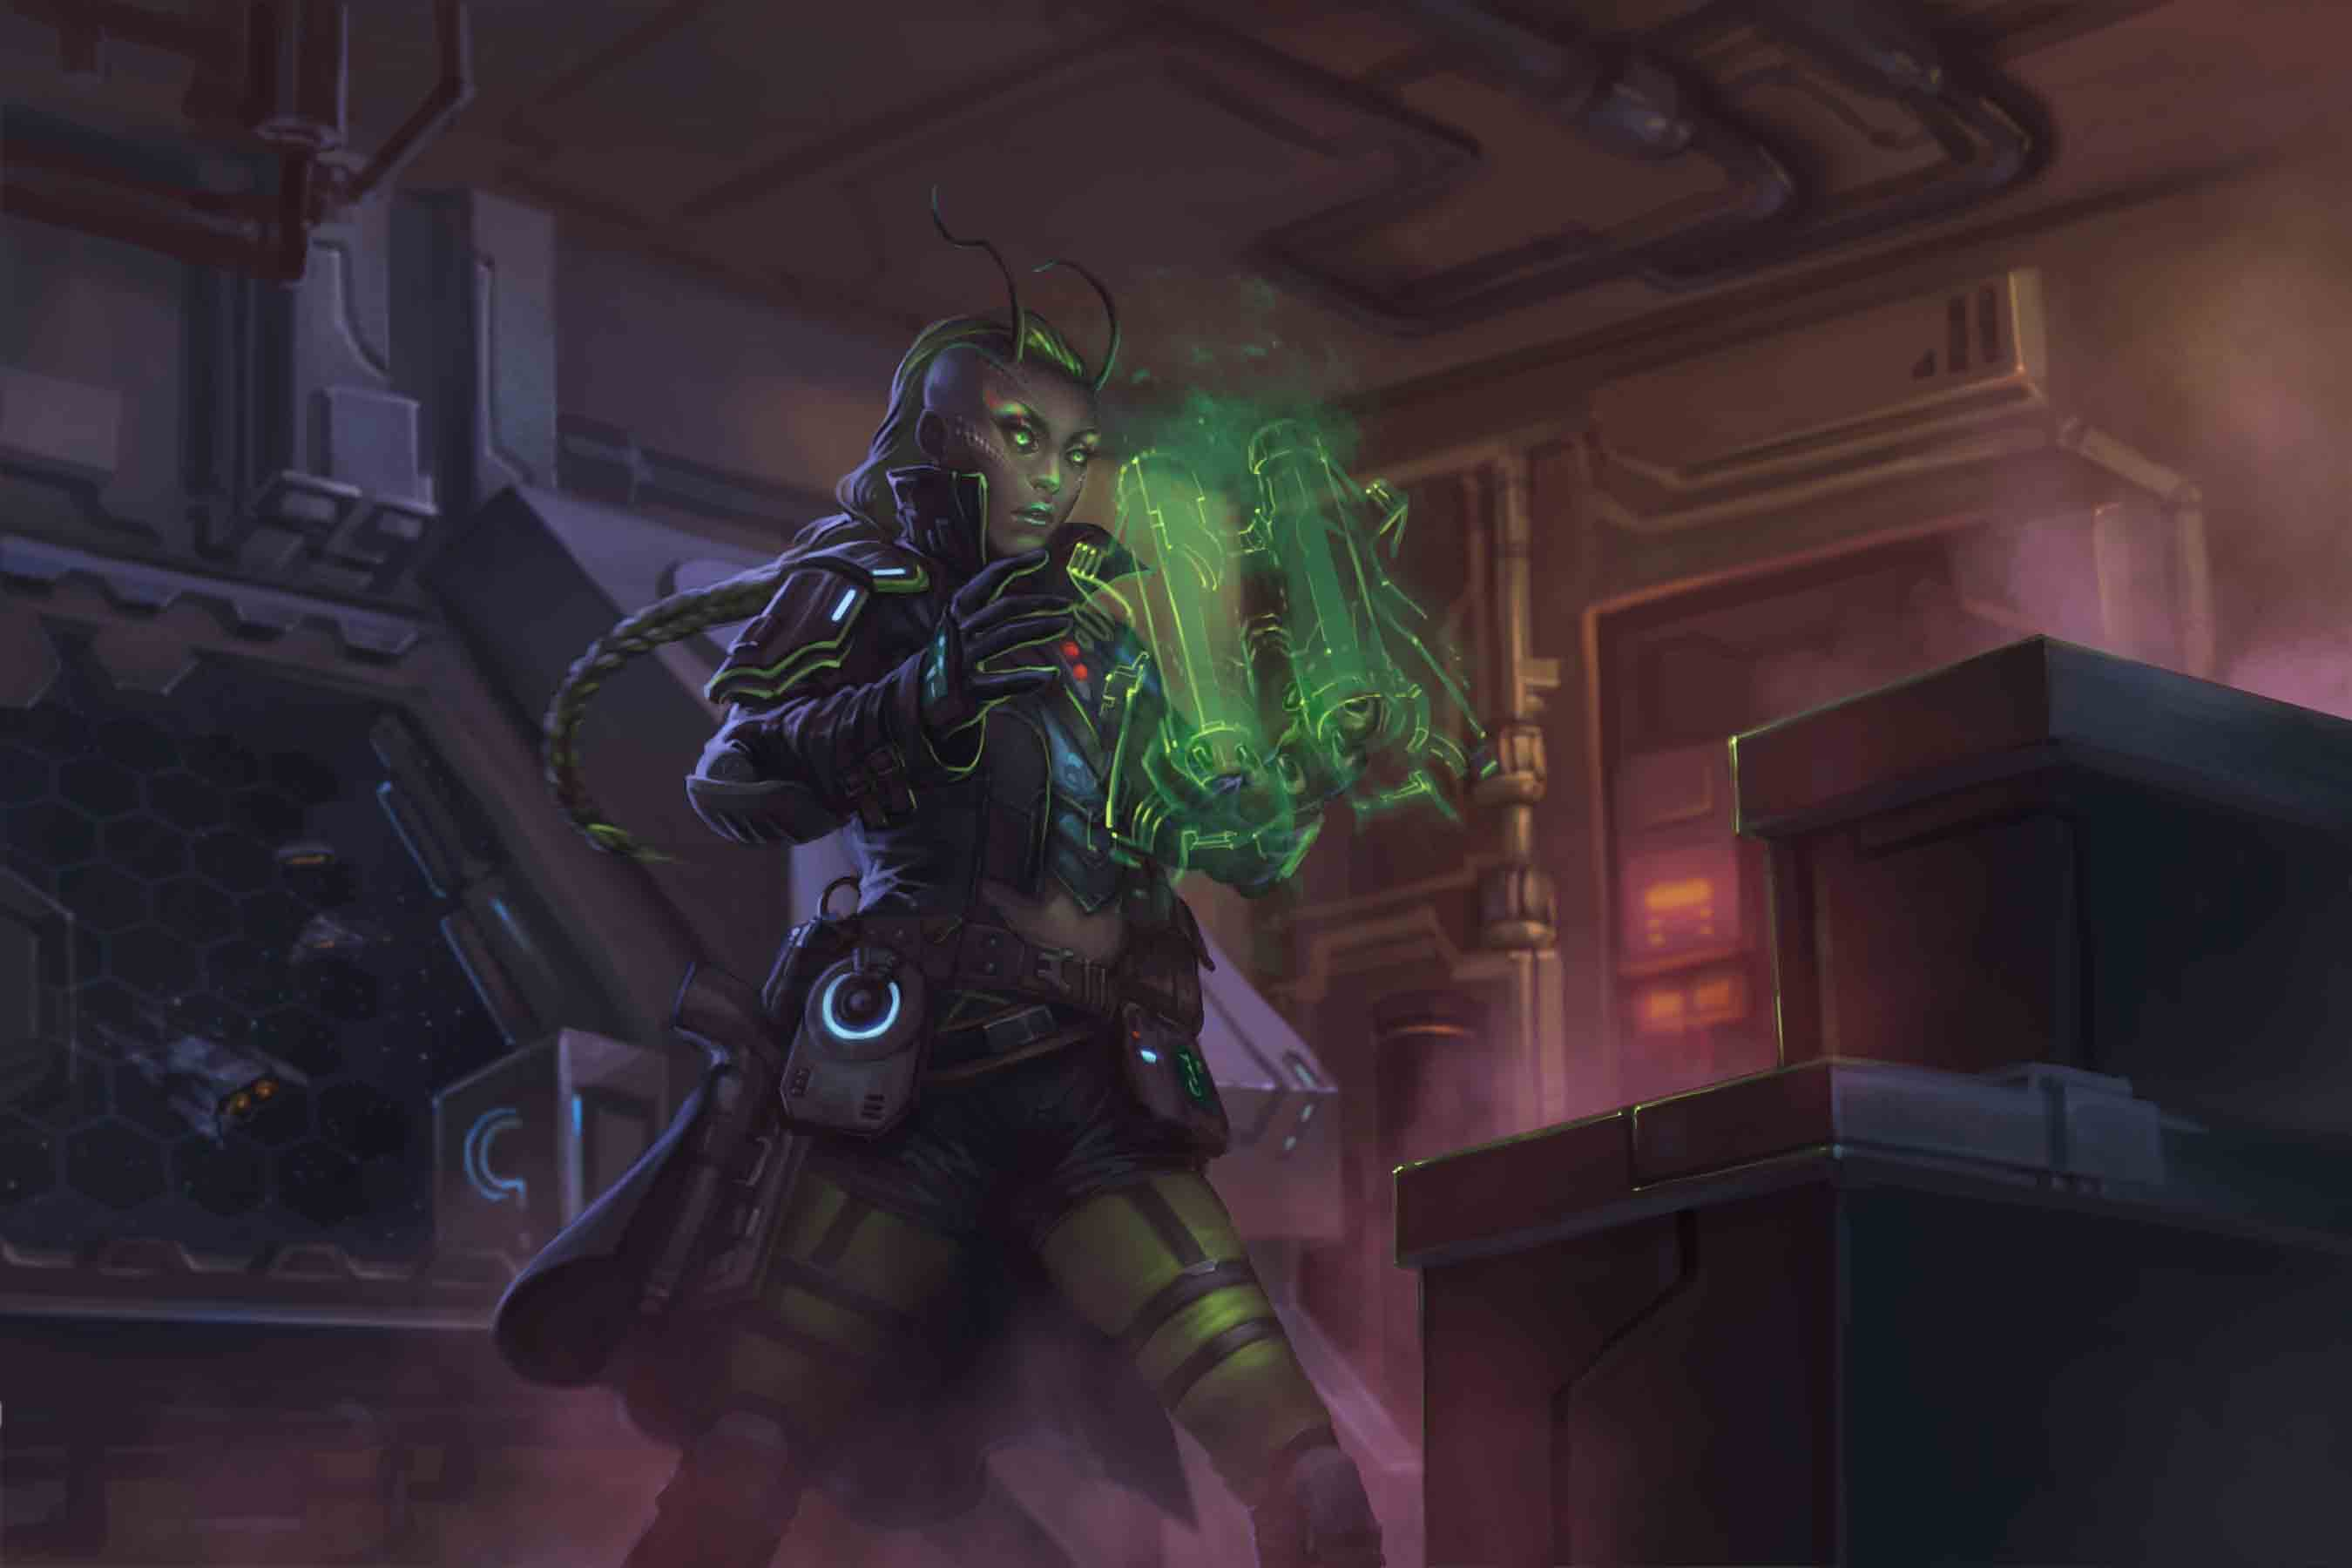 Raia, the iconic lashunta technomancer, concentrates as she focuses her power to sculpt a glowing green jetpack from magical force.